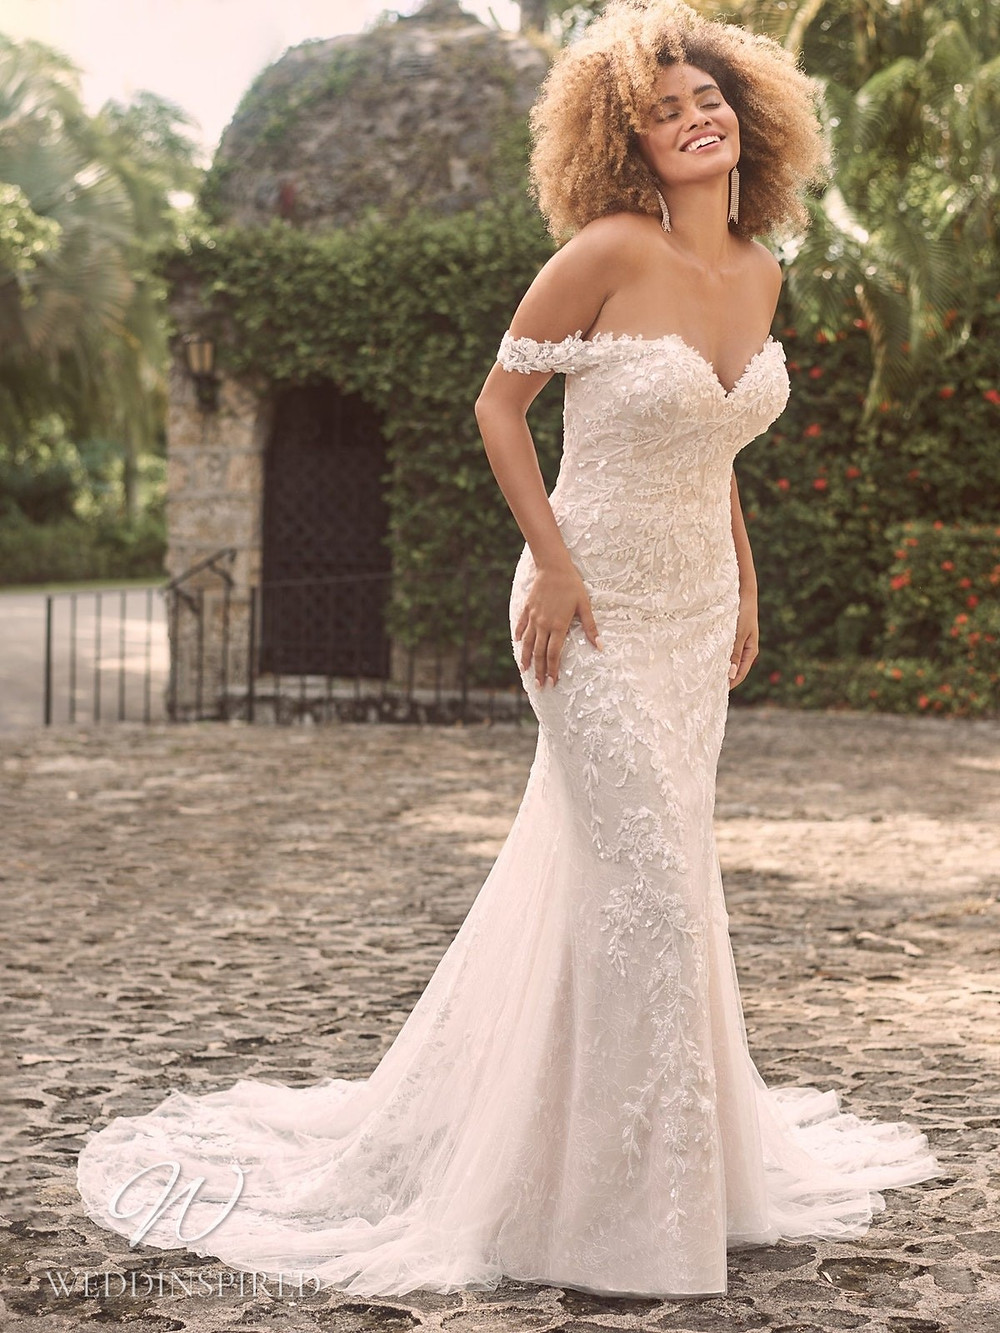 A Maggie Sottero Spring 2021 off the shoulder lace mermaid wedding dress